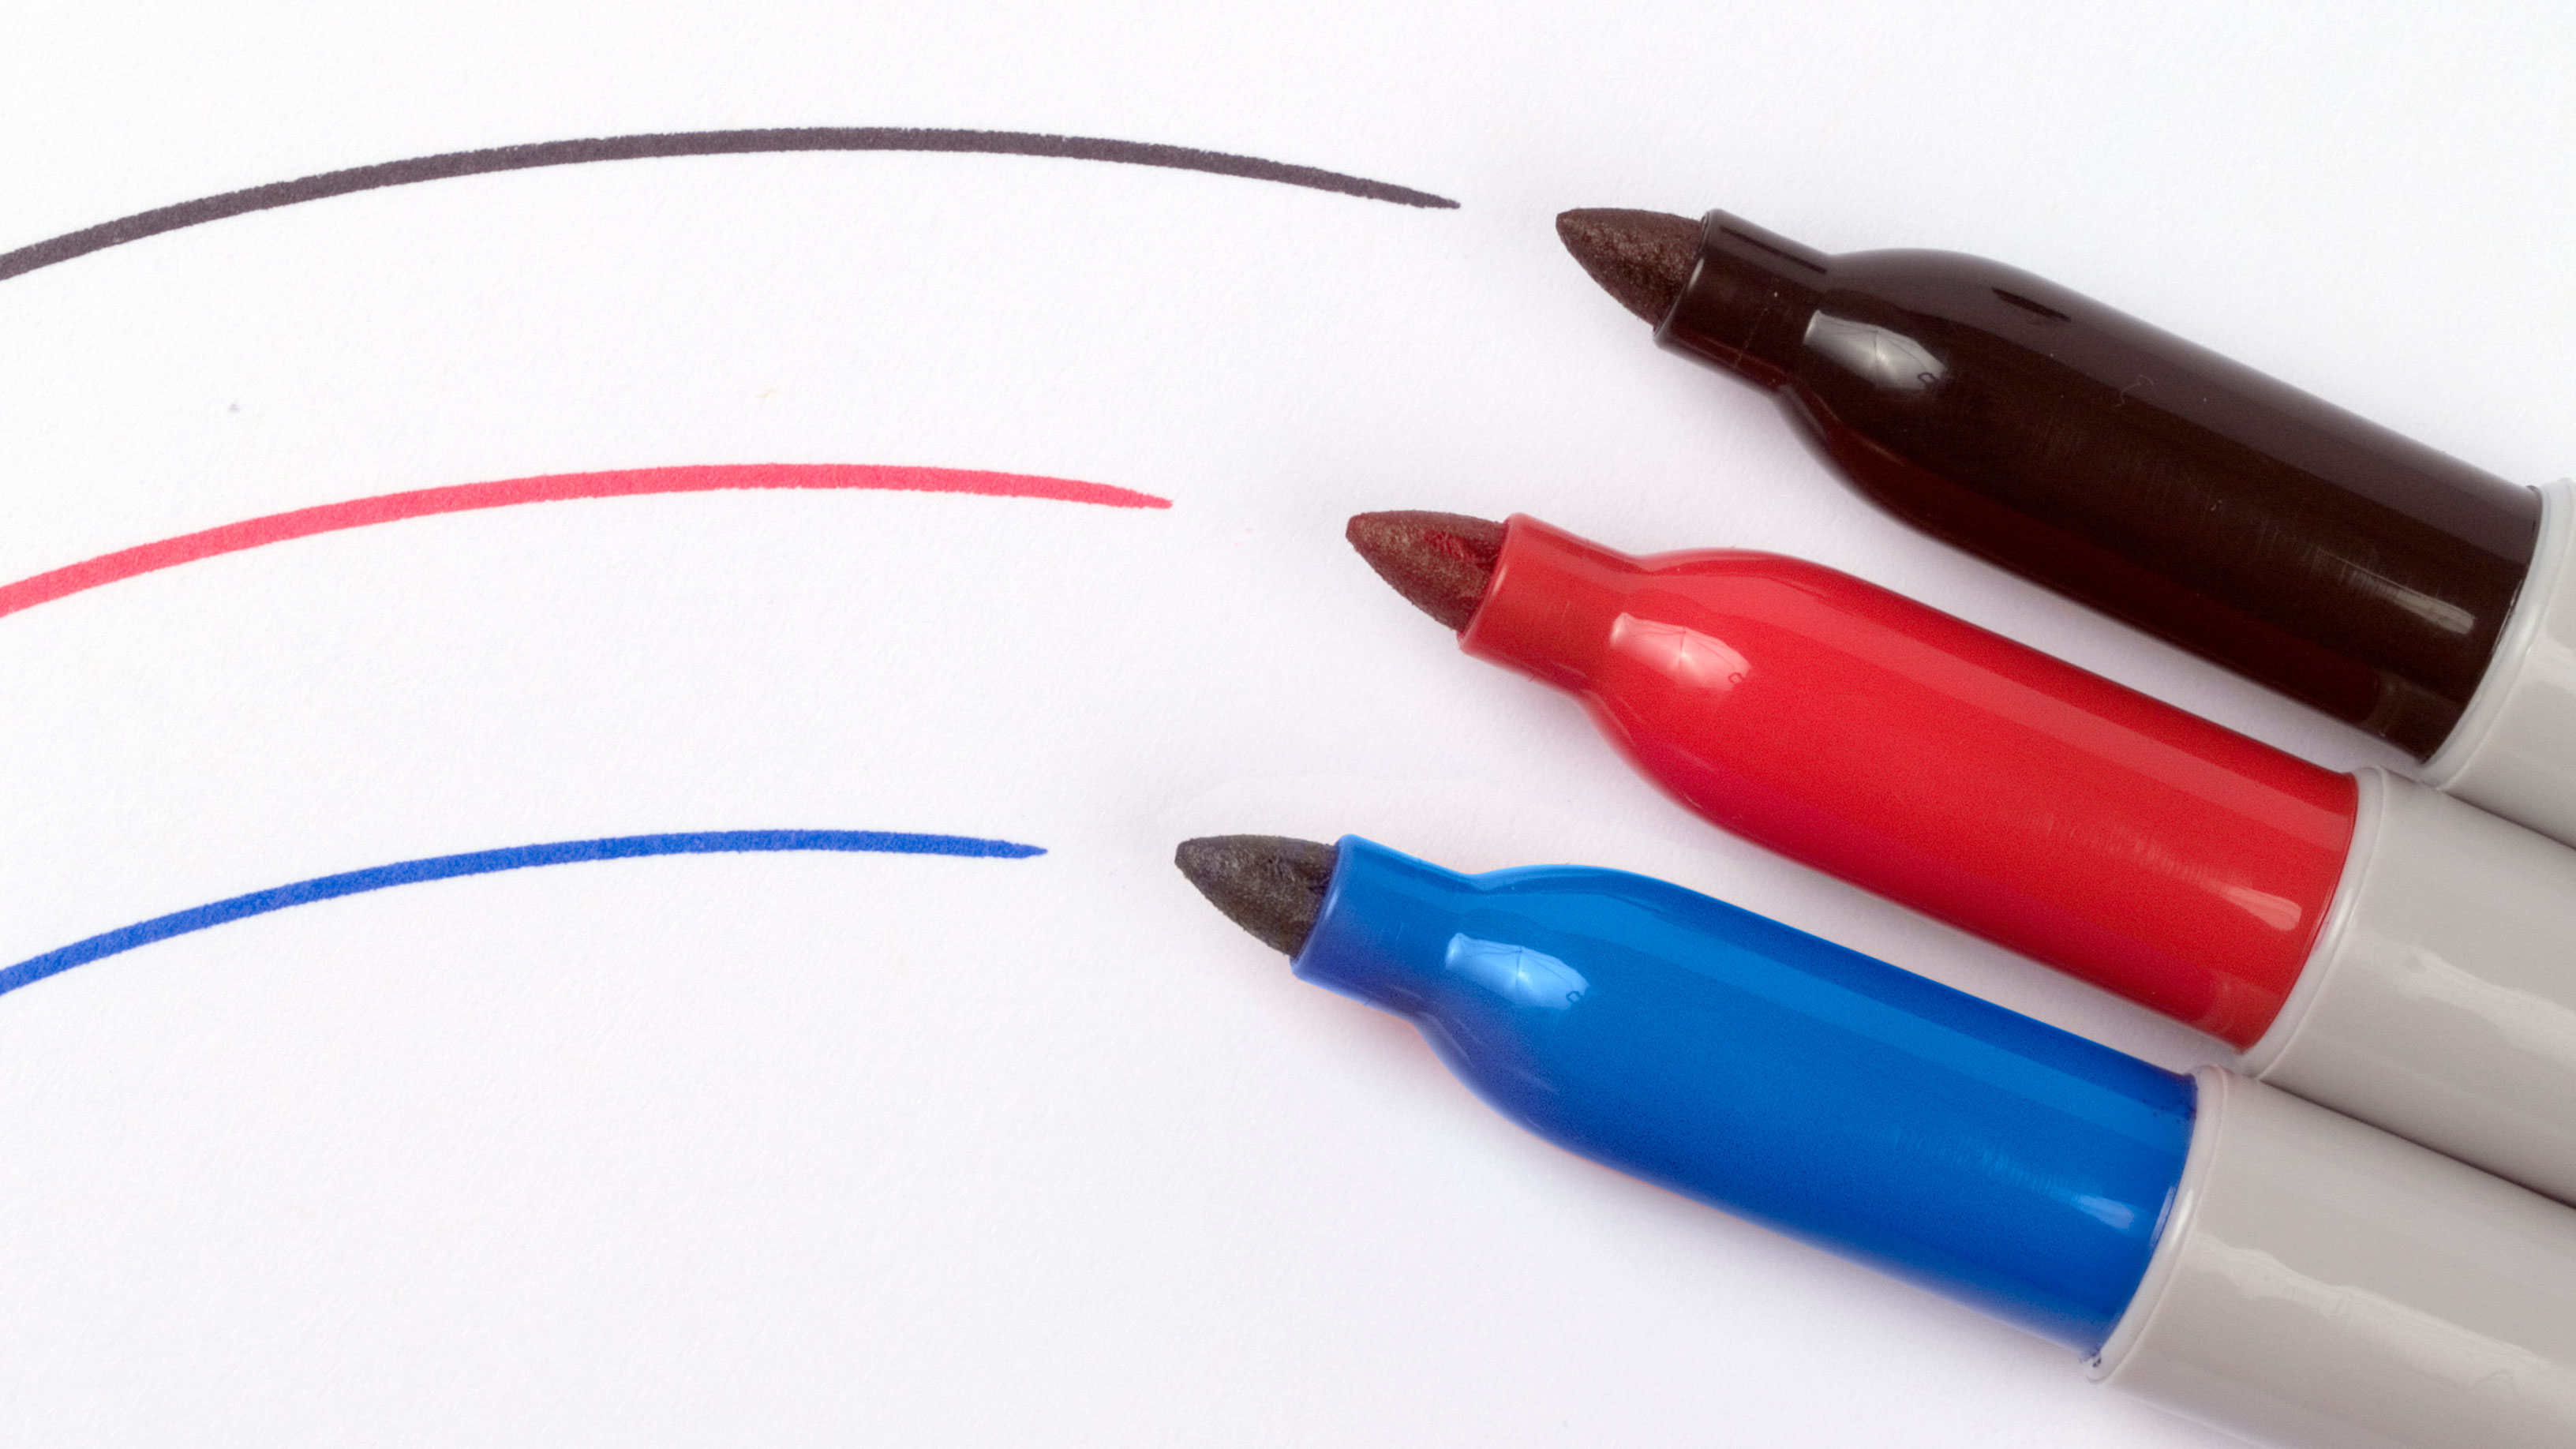 How to Get Permanent Marker Out Of Clothes | HowStuffWorks